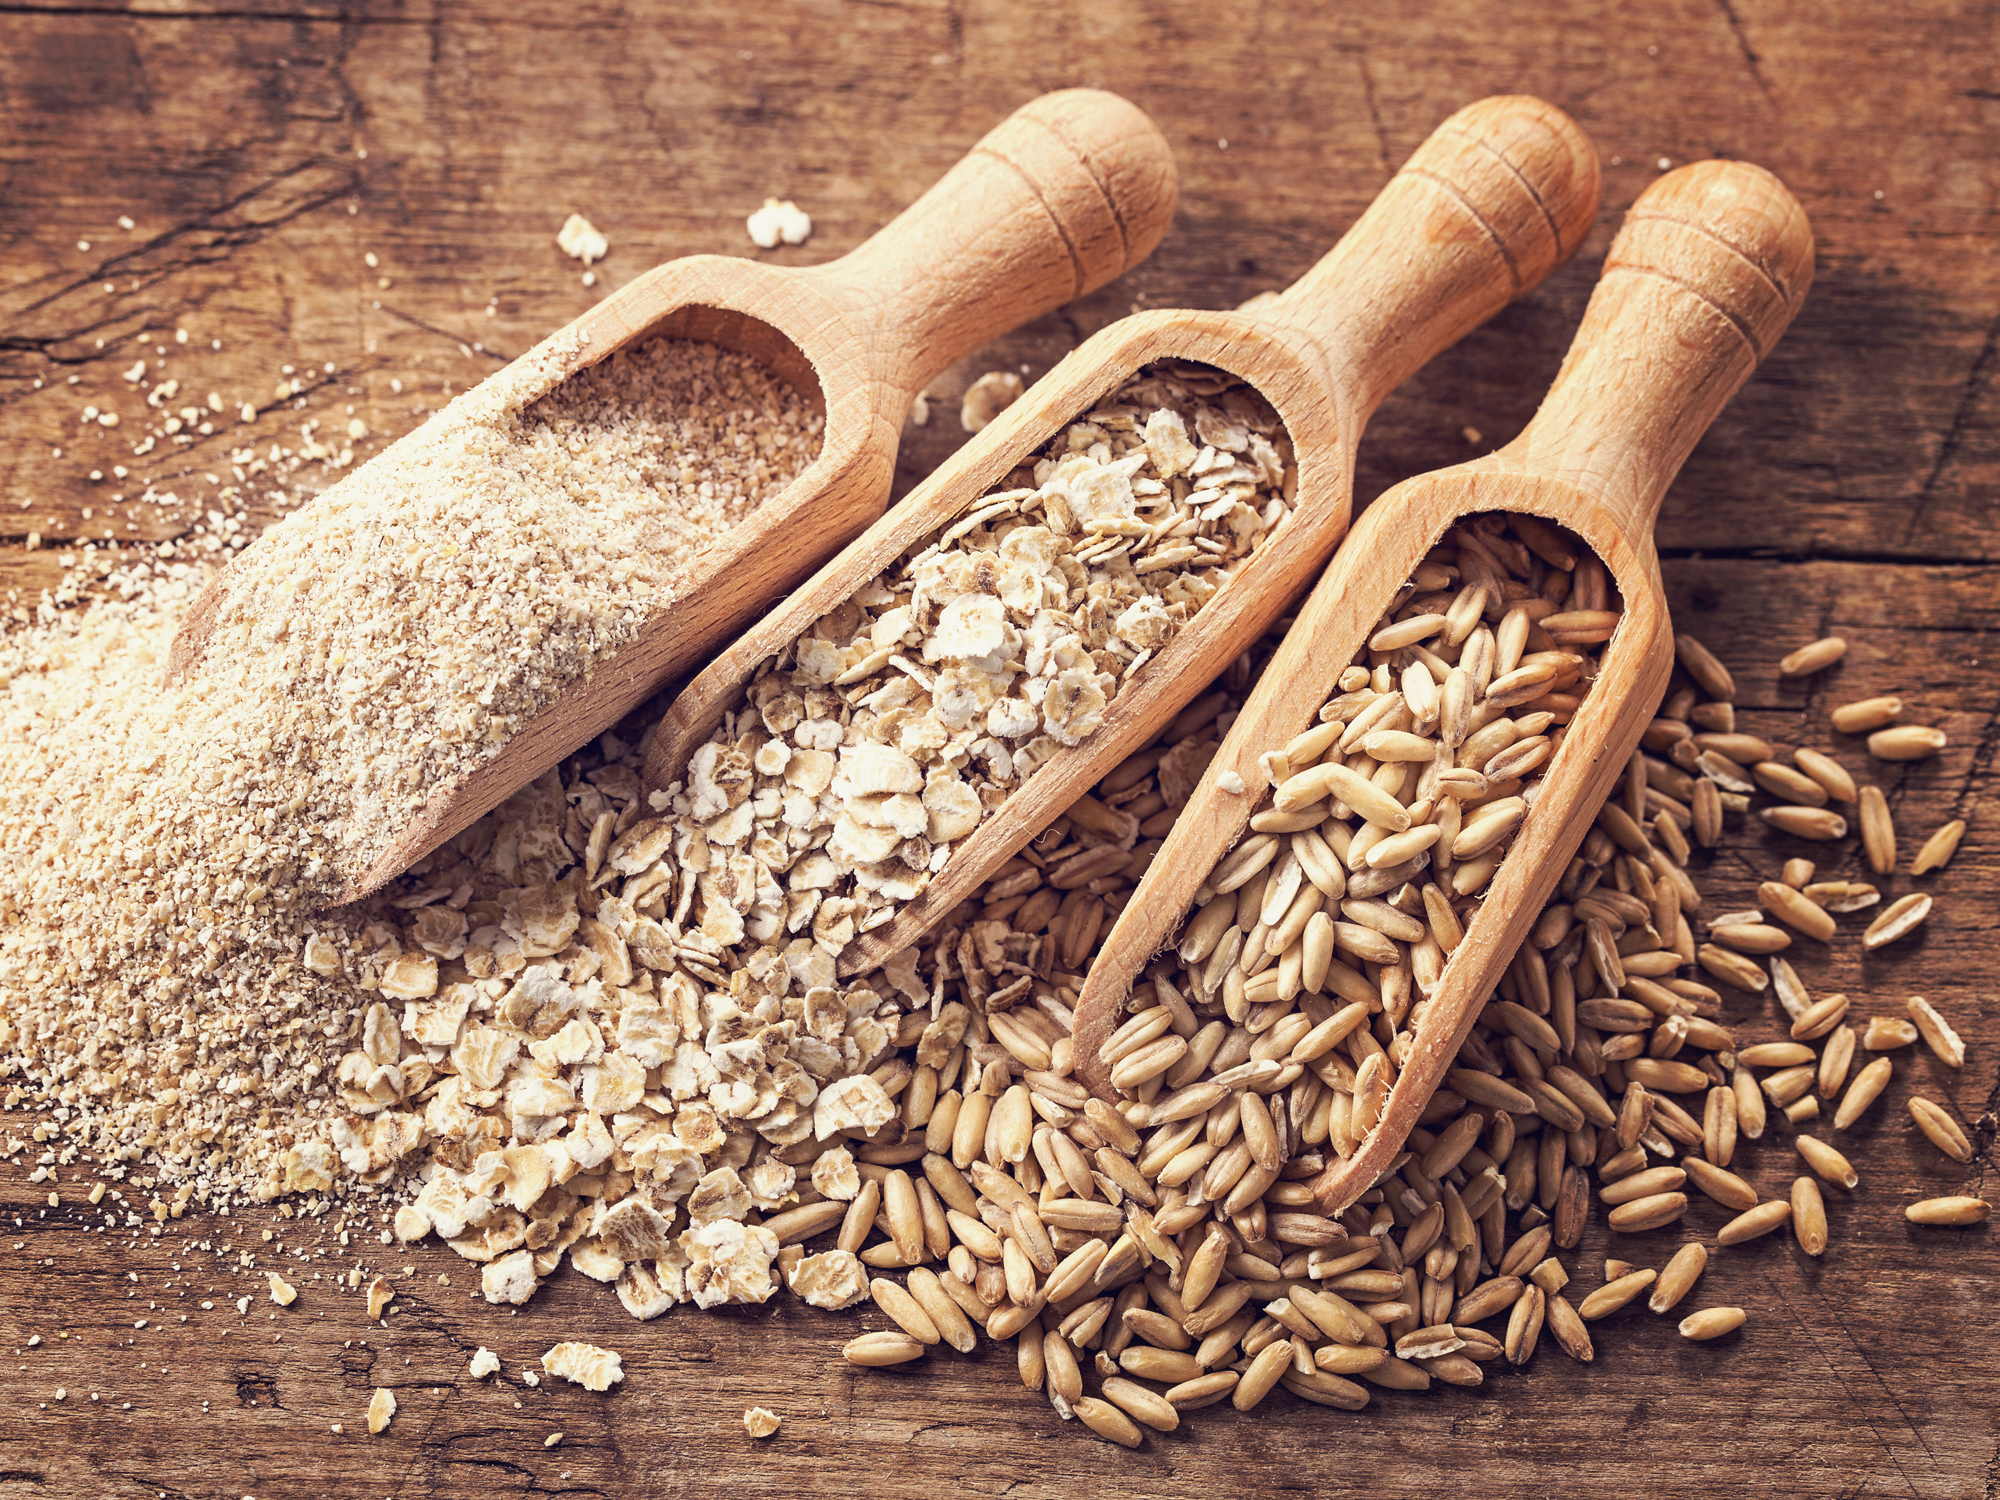 Whole grains for whole body wellness